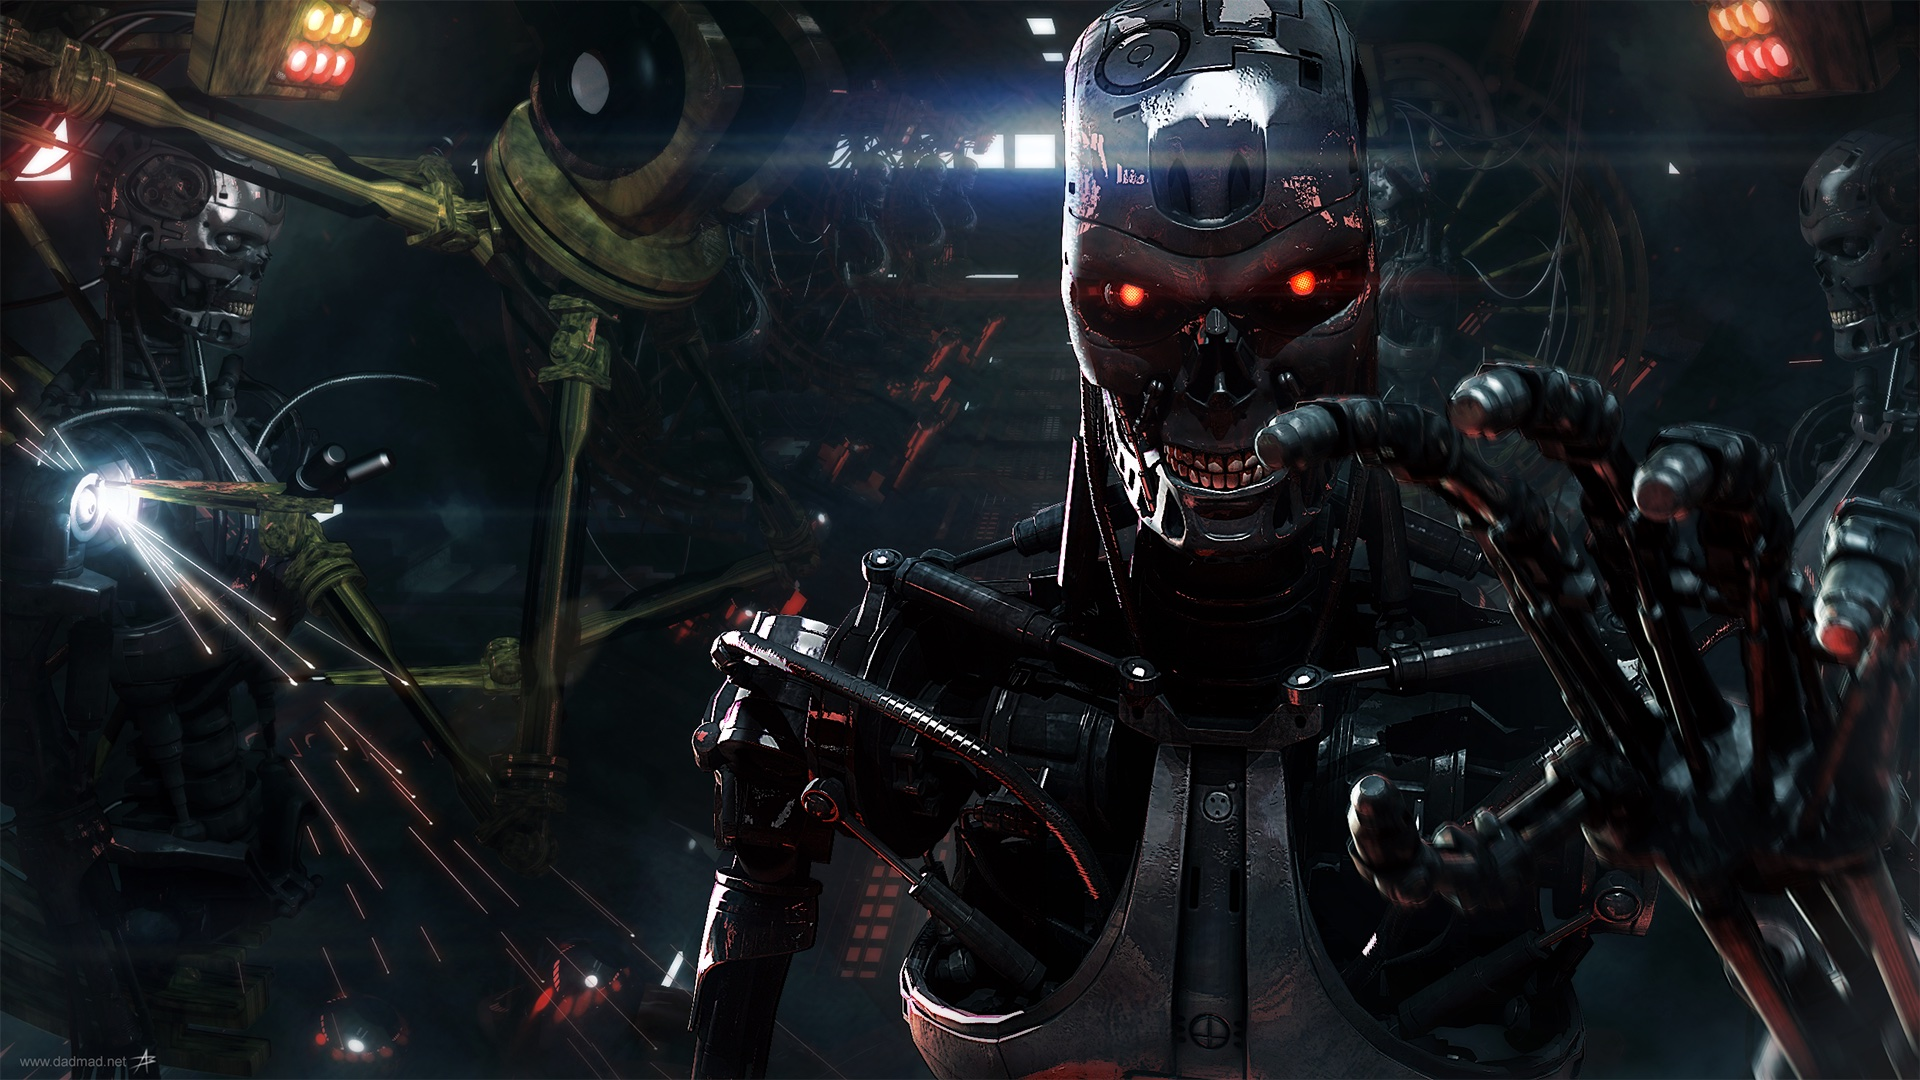 Terminator artwork. Image credit: http://orig14.deviantart.net/5dbc/f/2014/005/f/5/skynet_t800_factory_2__wallpaper__by_dadmad-d70yq68.png